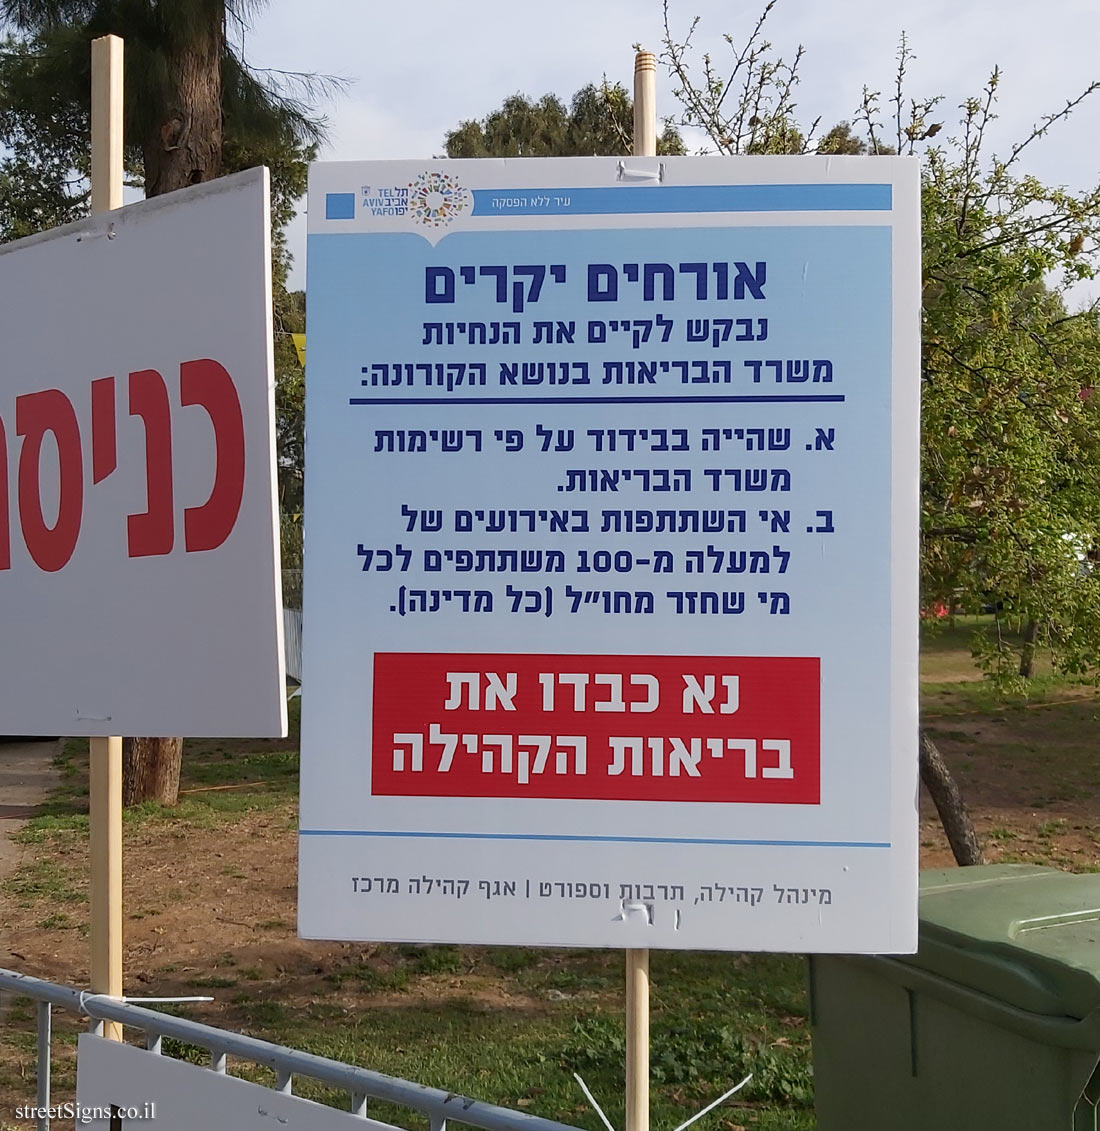 Tel Aviv - Hayarkon Park - A congregation restriction due to the Corona epidemic